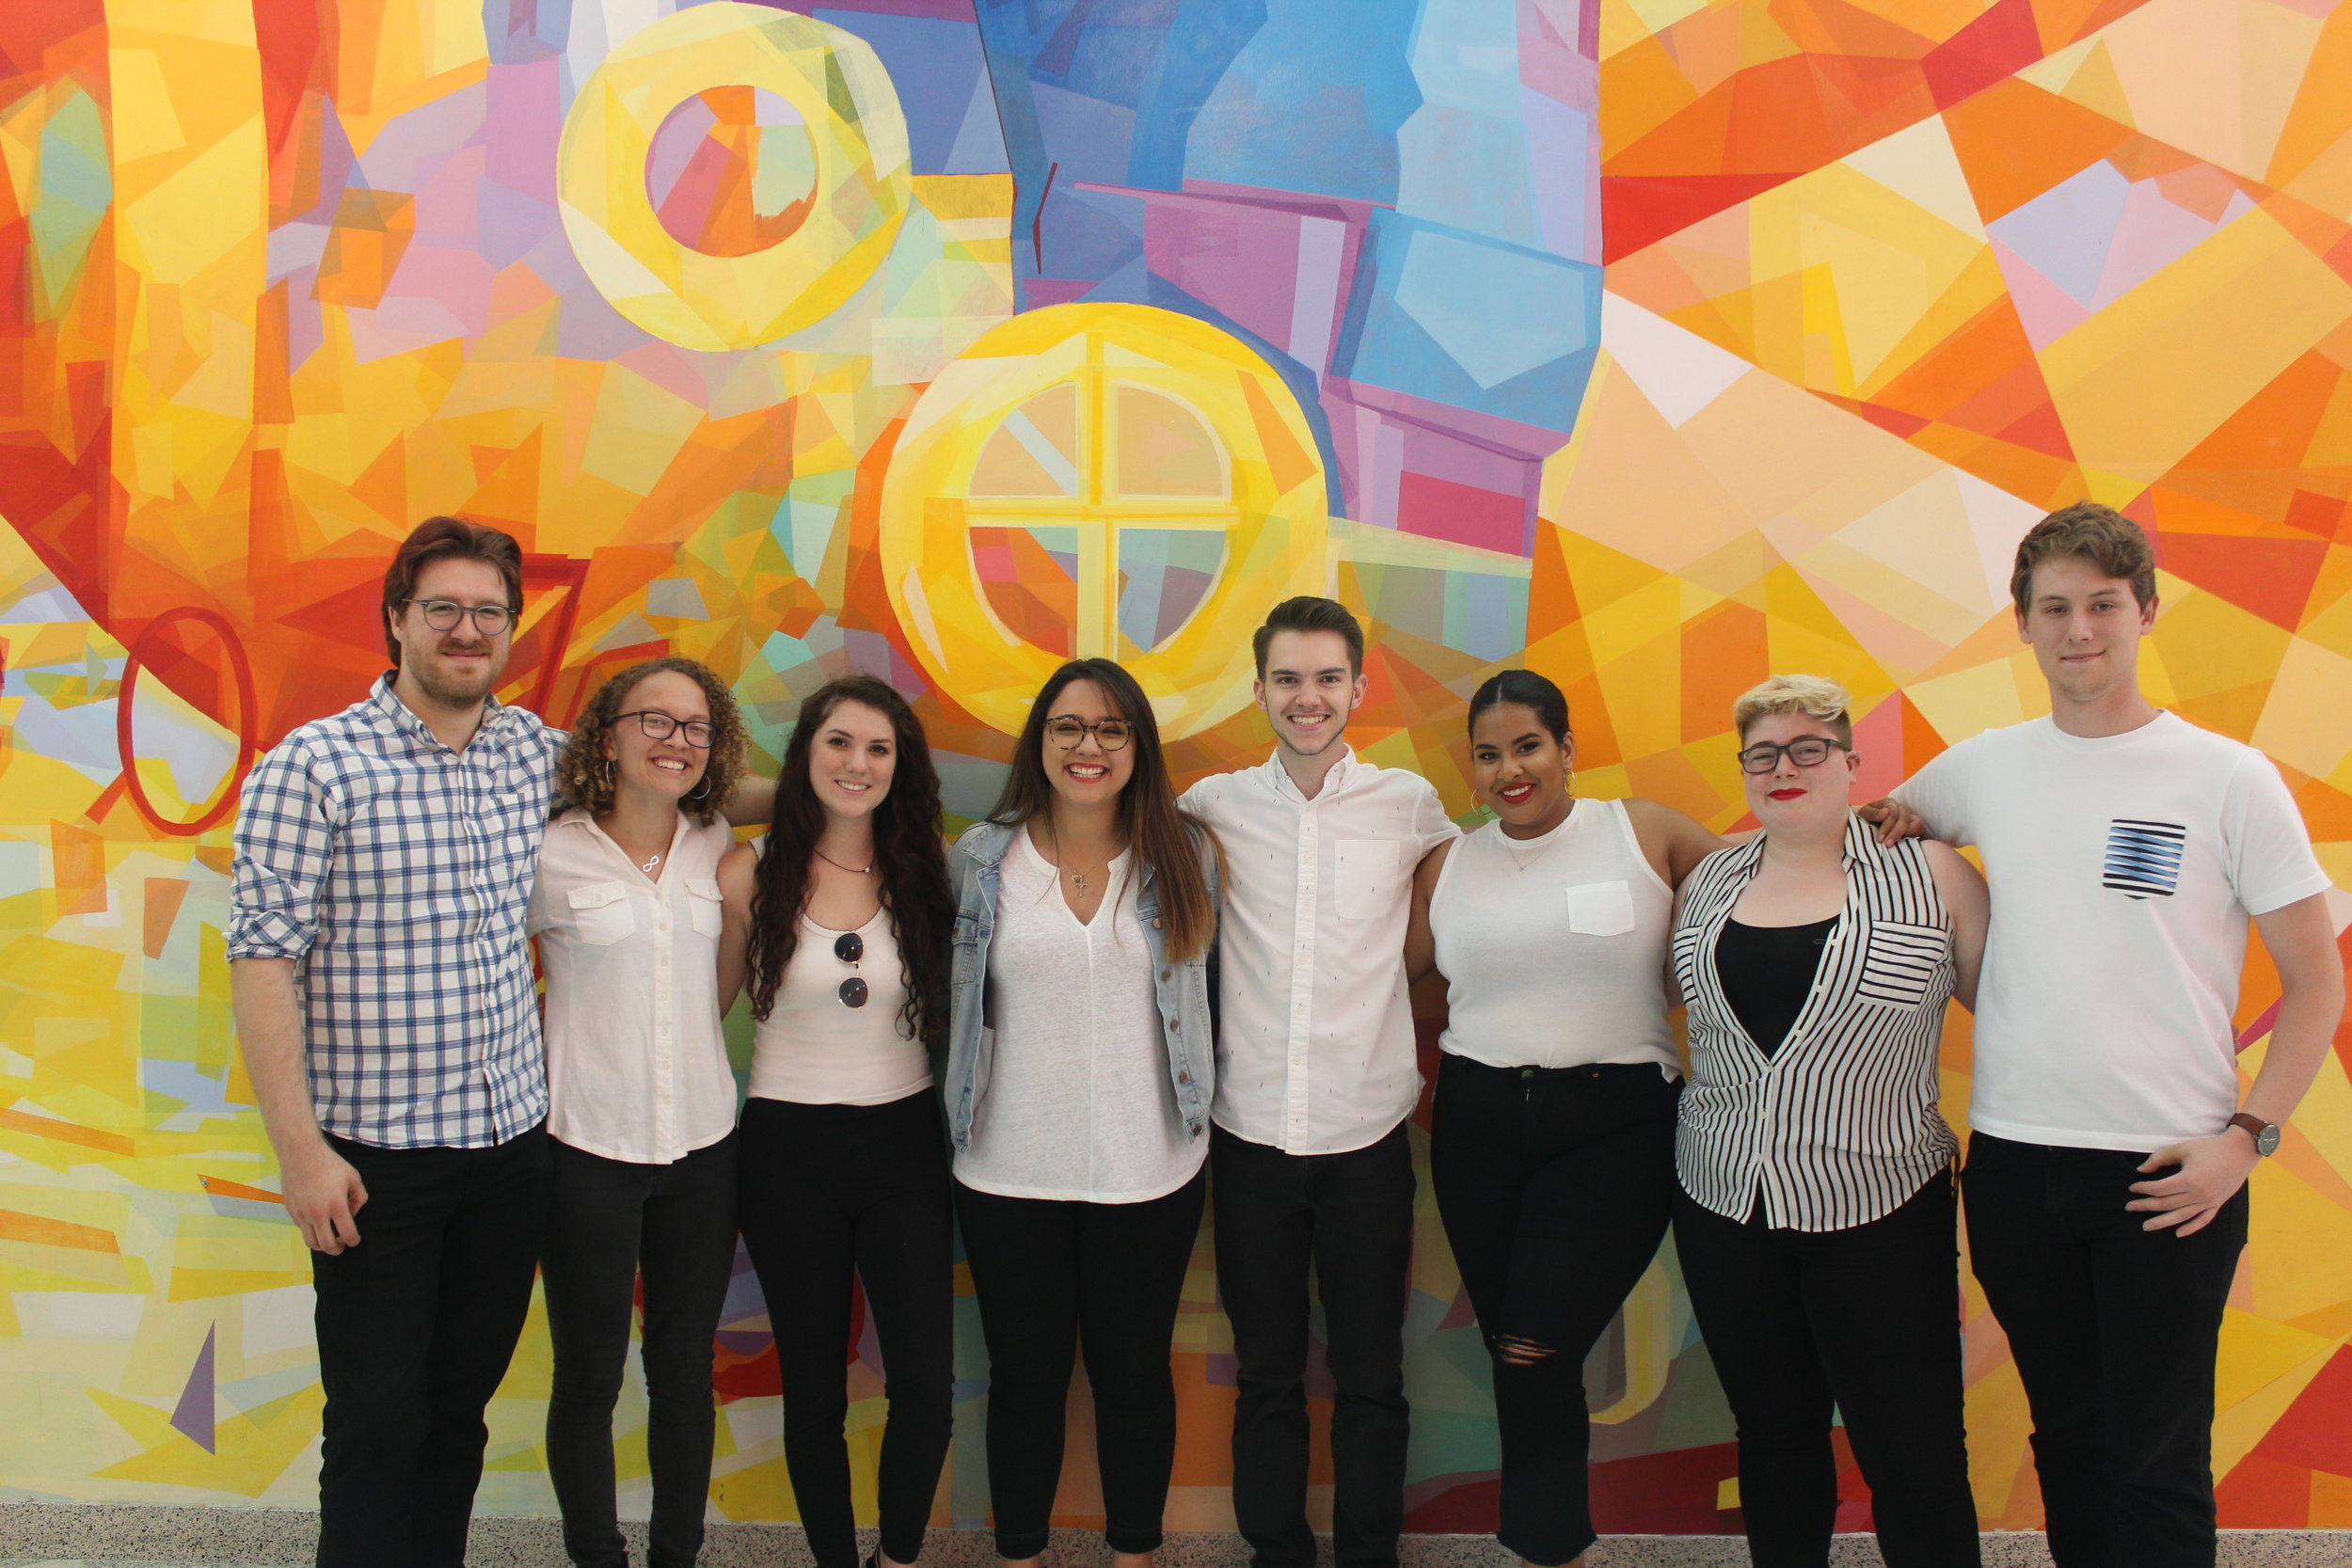 The AIAS Northeast QUAD 2019: Temple AIAS Planning Team consists of students from Temple University. As the 2019 AIAS Northeast QUAD Team, they are responsible for the planning and the implementation of AIAS Northeast QUAD 2019 to be held at Temple University from October 3, 2019 to October 6, 2019. Each member brings experience, innovative ideas and a unique set of skills to the committee.